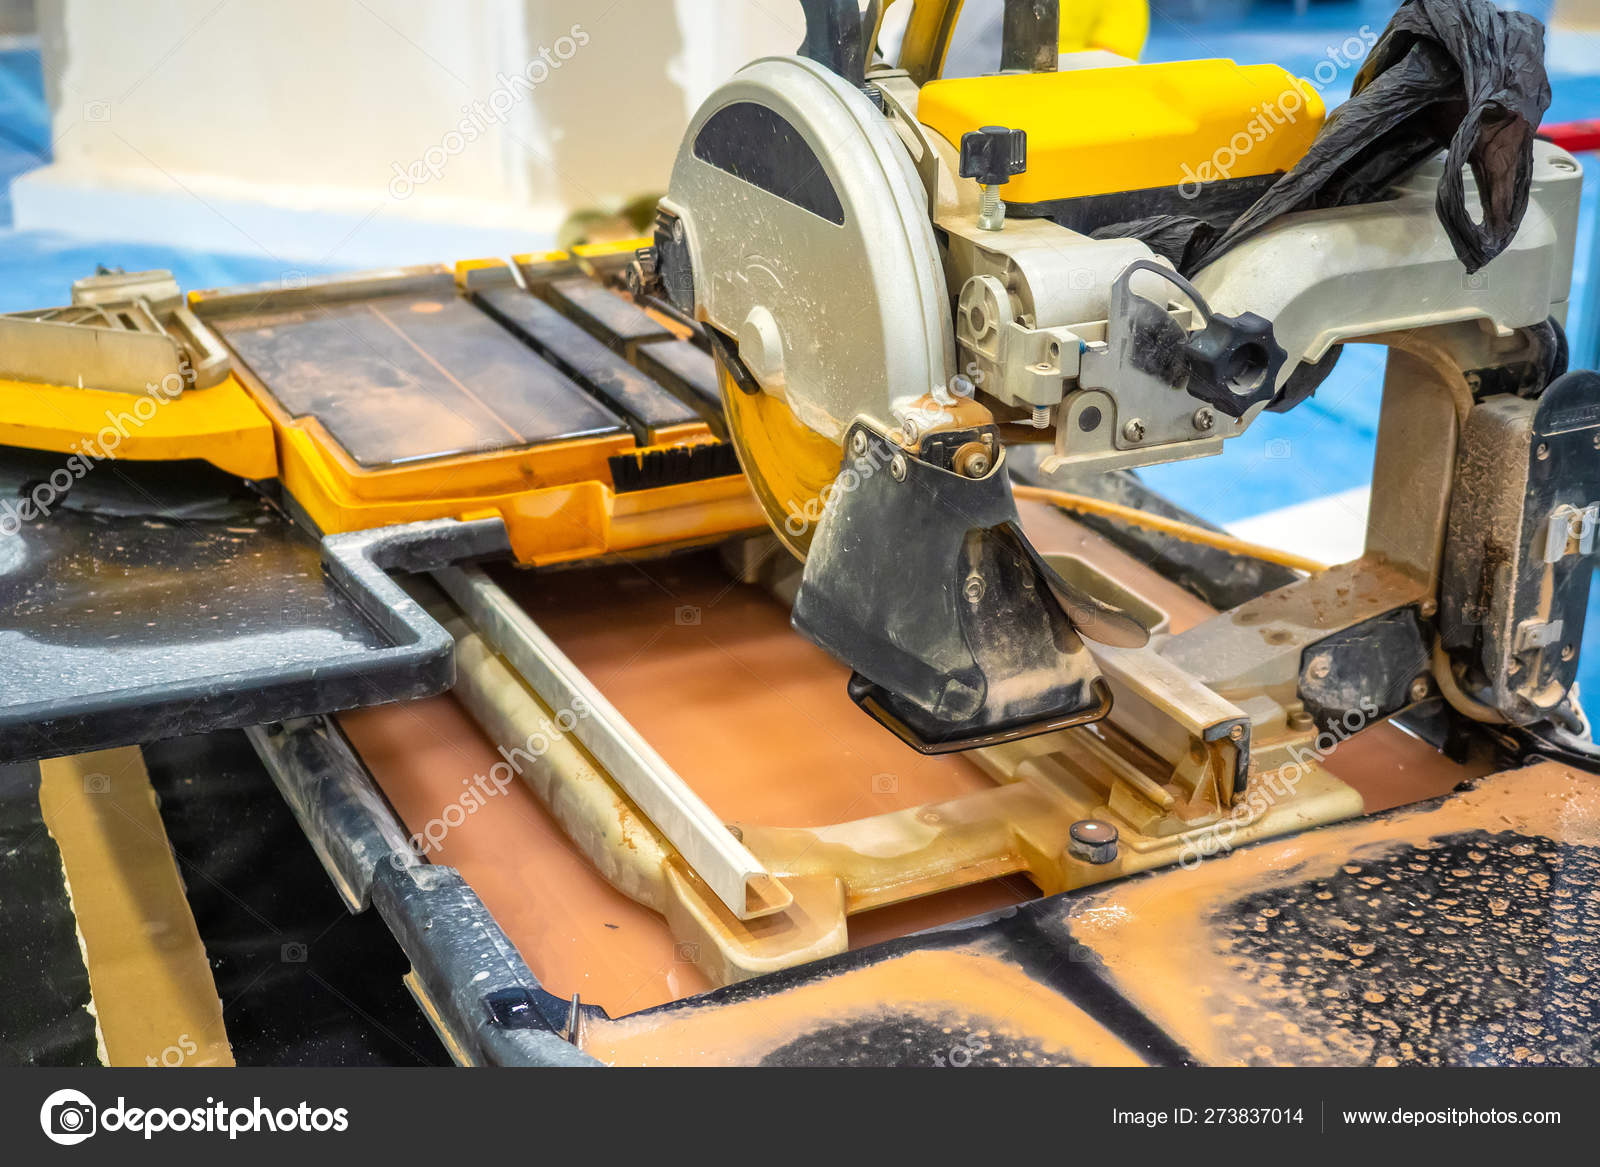 cutting tile a circular saw a builder performs a tile cut finishing work circular saw with water supply work at the machine stock photo image by c grinphoto 273837014